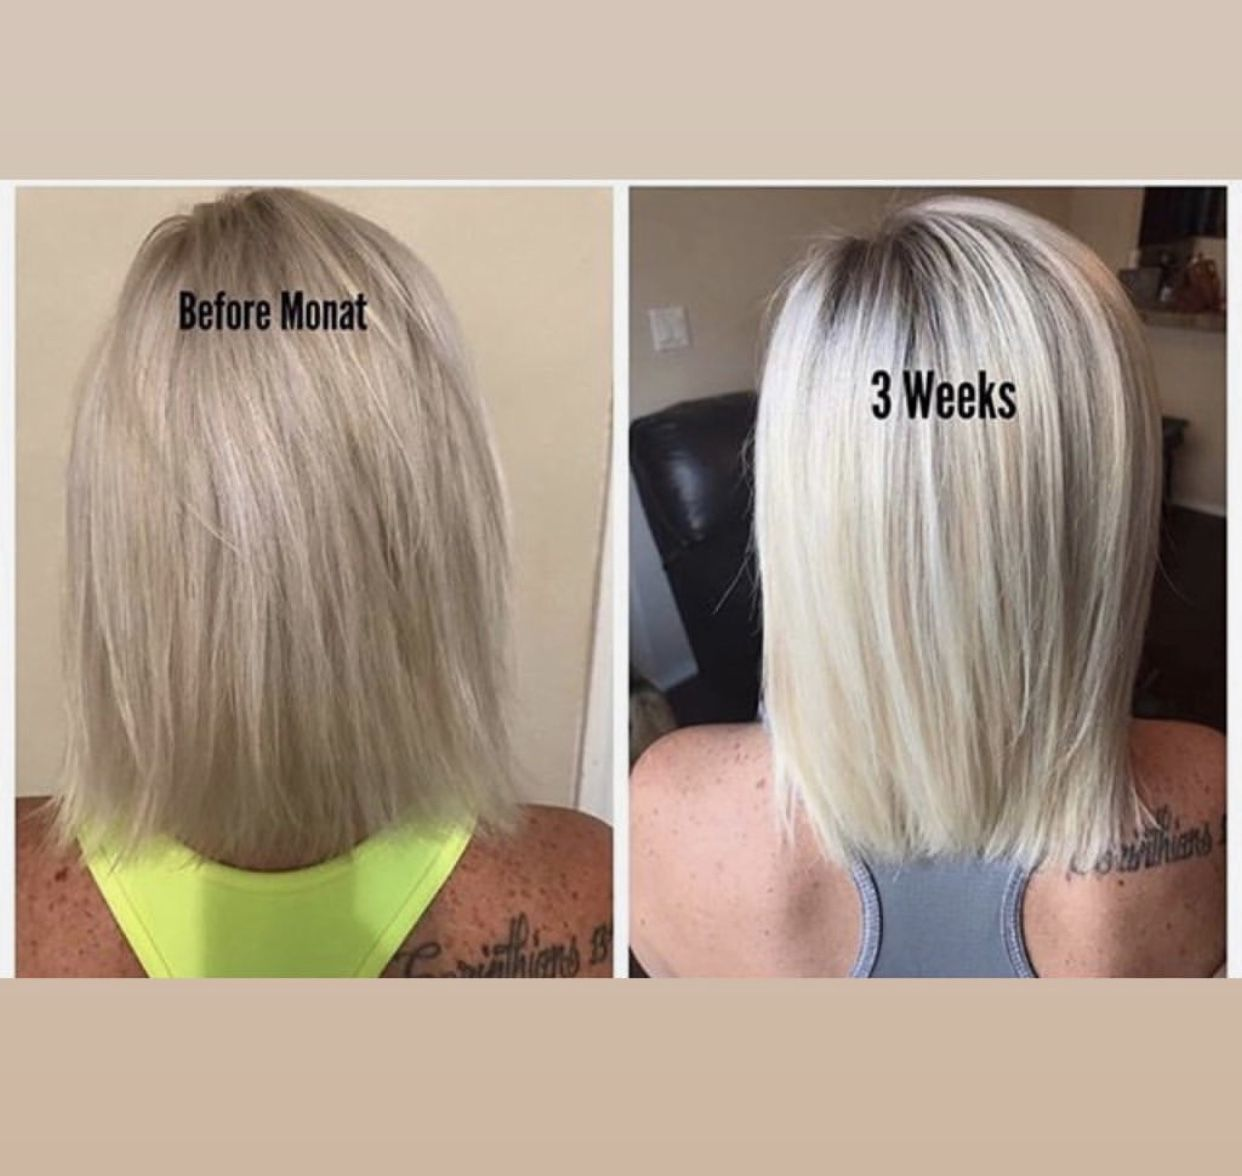 Pin by Leydi on Before & After (MONAT) Monat hair